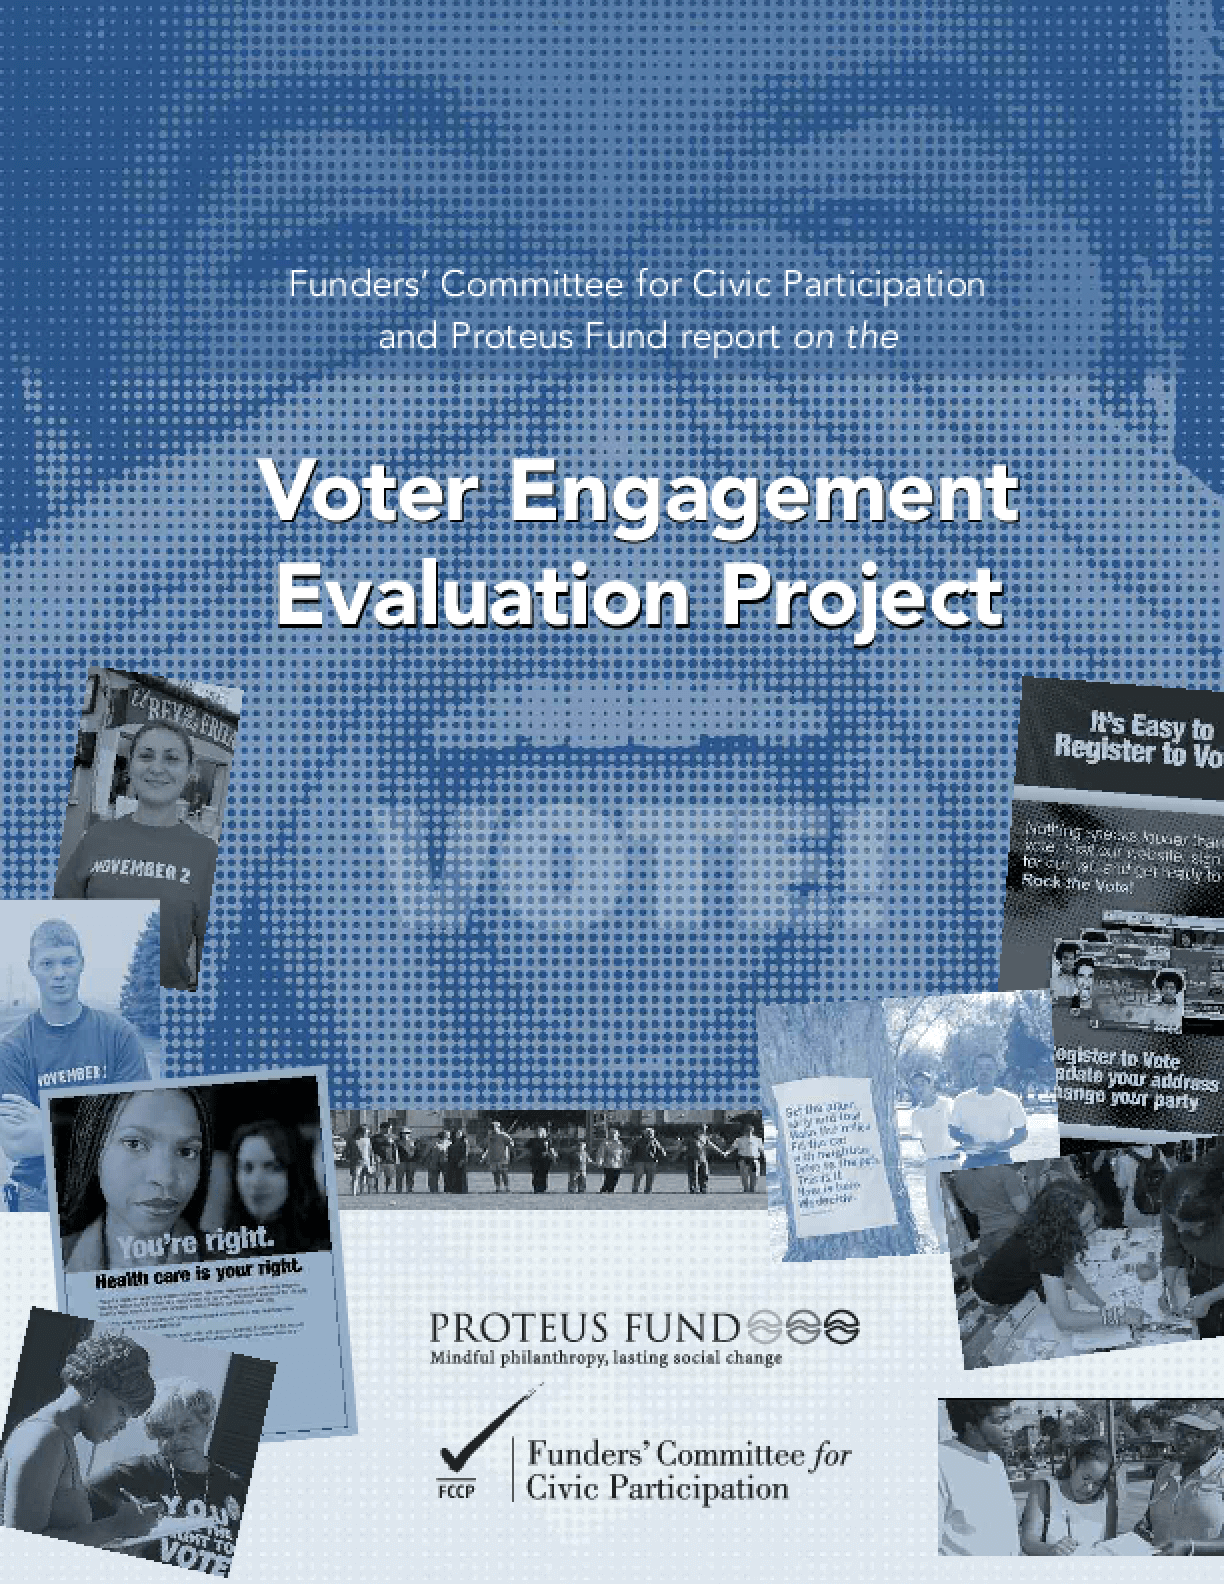 Voter Engagement Evaluation Project